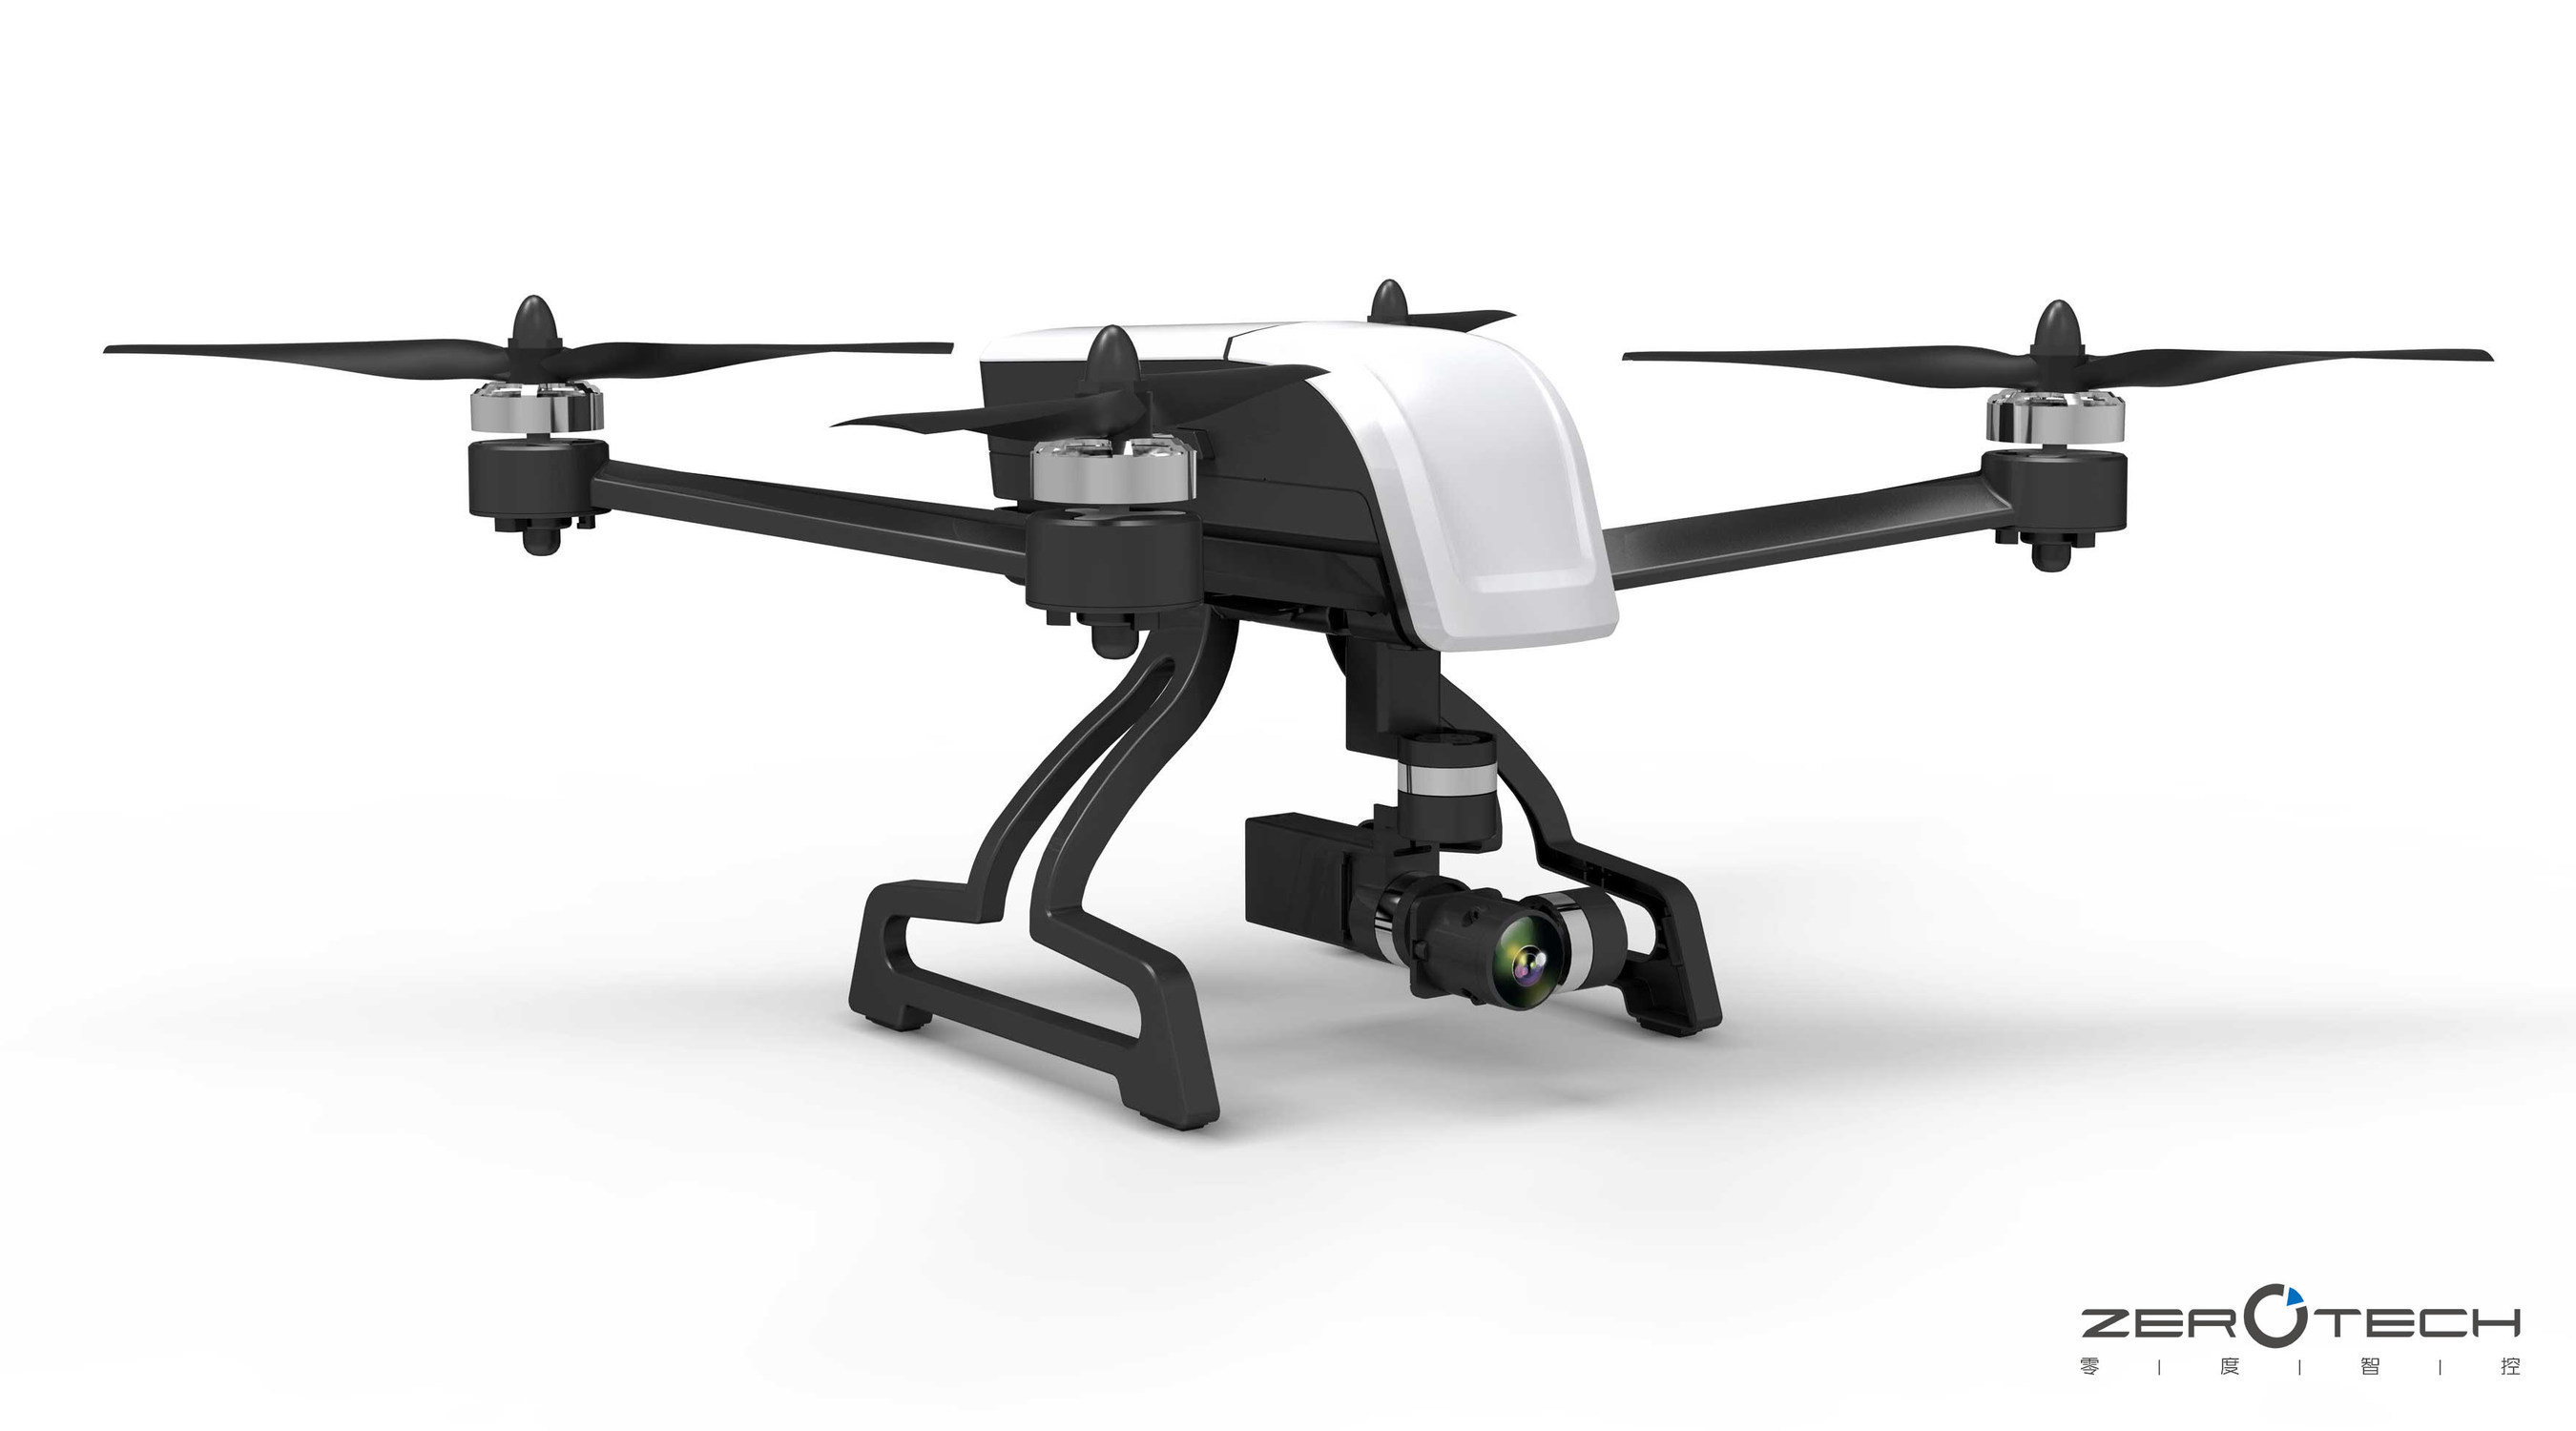 This 4K drone based on ZEROTECH SMART Turnkey Solution will be debuted at CES2016